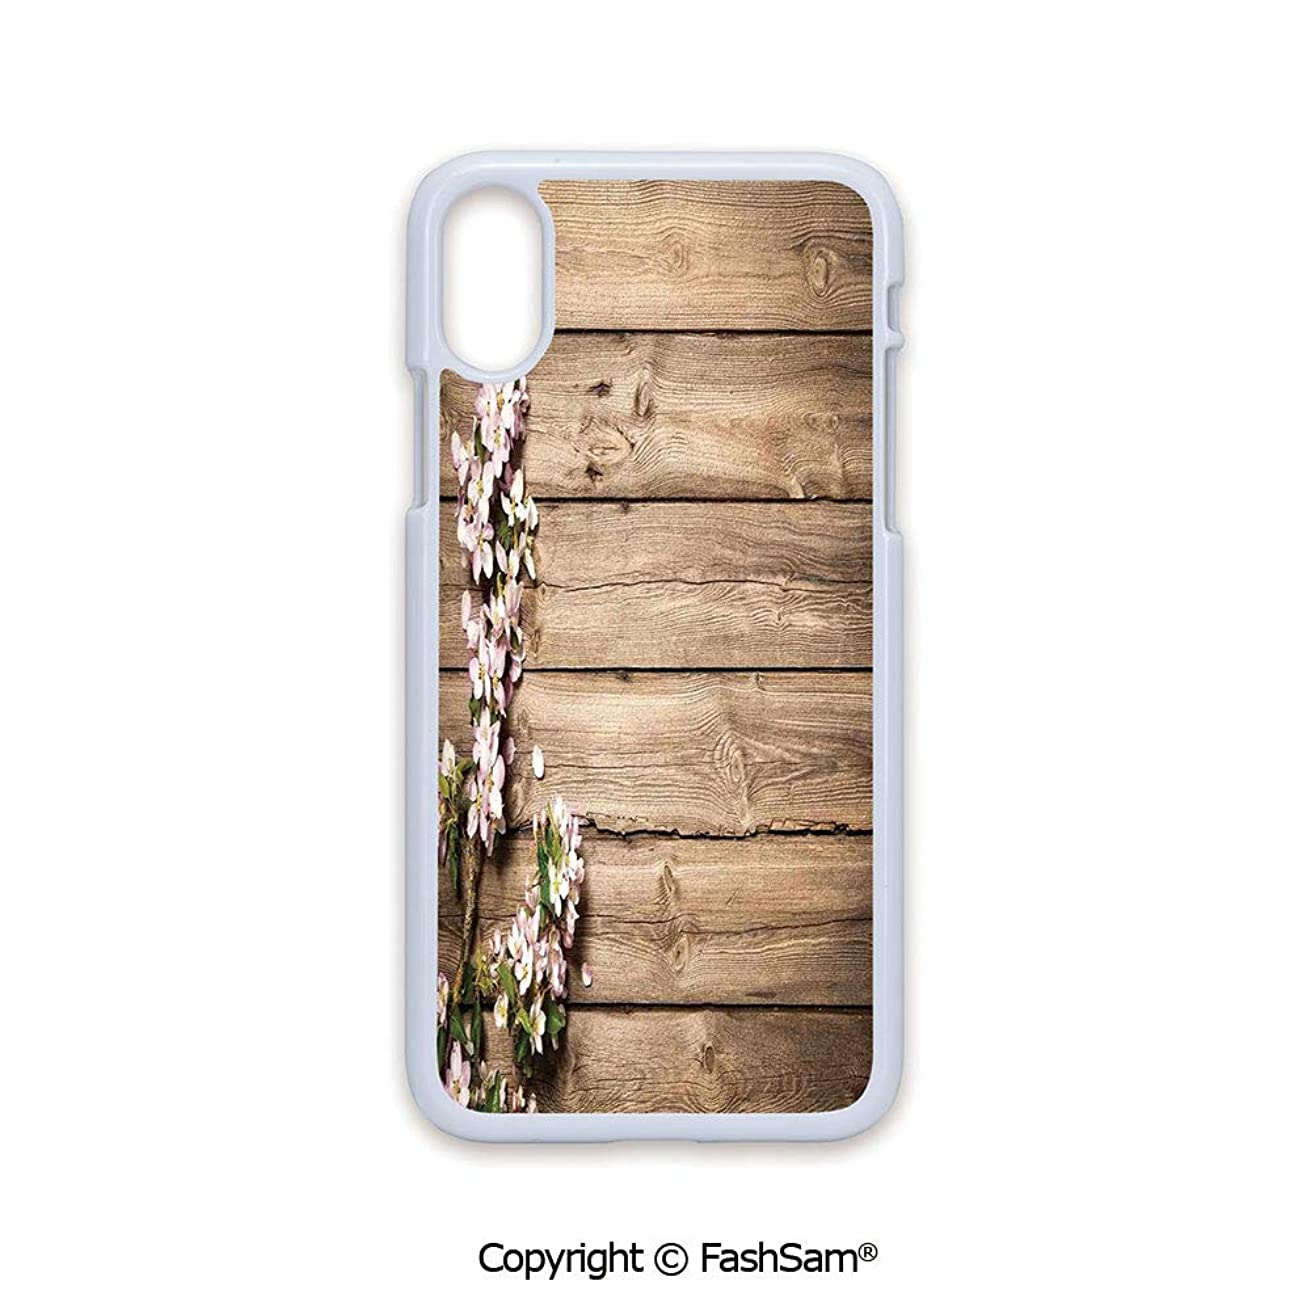 Plastic Rigid Mobile Phone case Compatible with iPhone X Black Edge Sweet Spring Flowering Branch on Weathered Wooden Blooming Orchard 2D Print Hard Plastic Phone Case